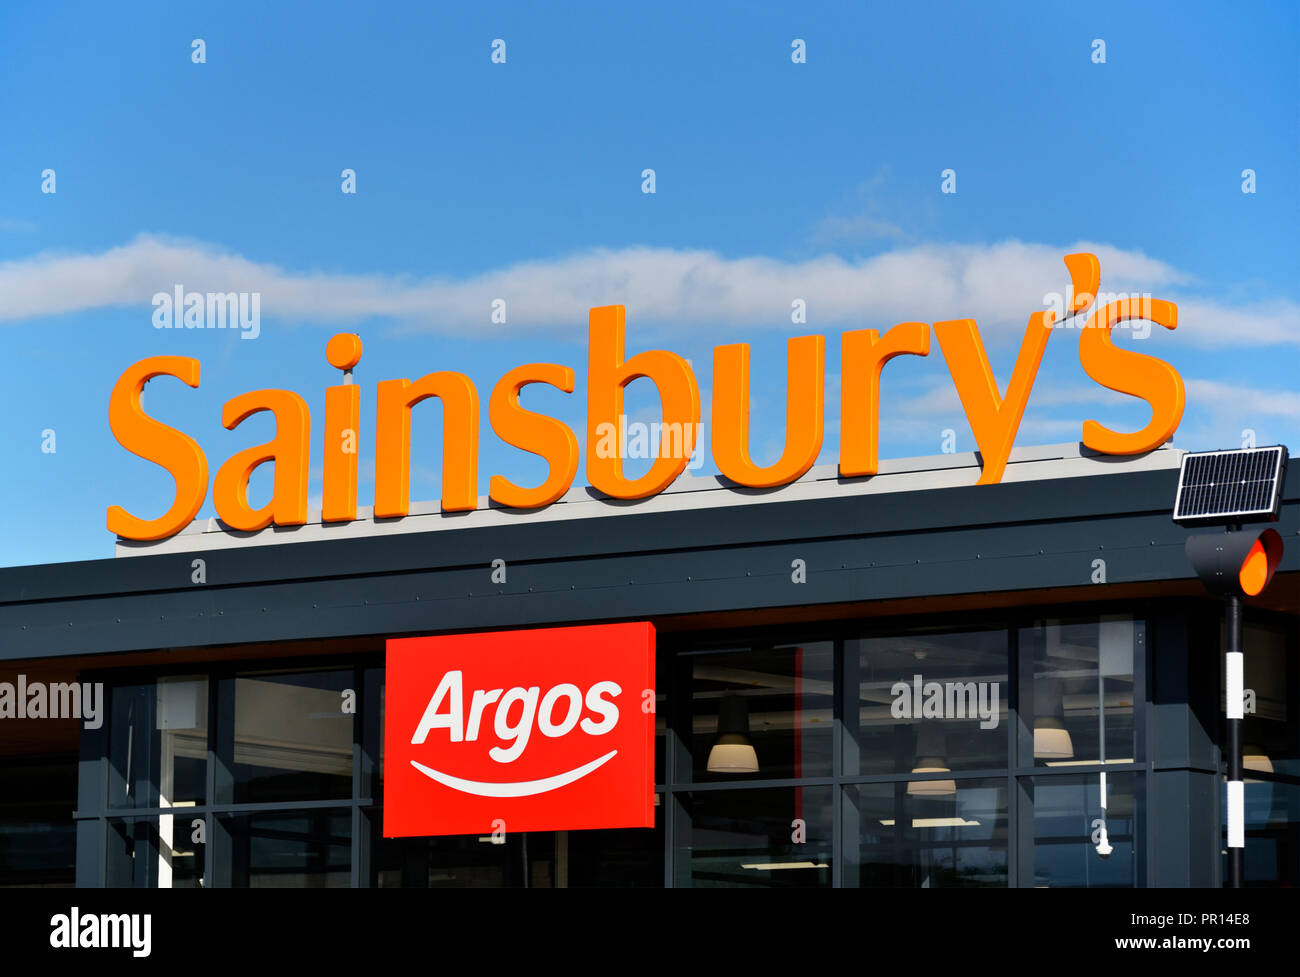 sainsburys-and-argos-supermarket-shap-road-kendal-cumbria-england-united-kingdom-europe-PR14E8.jpg